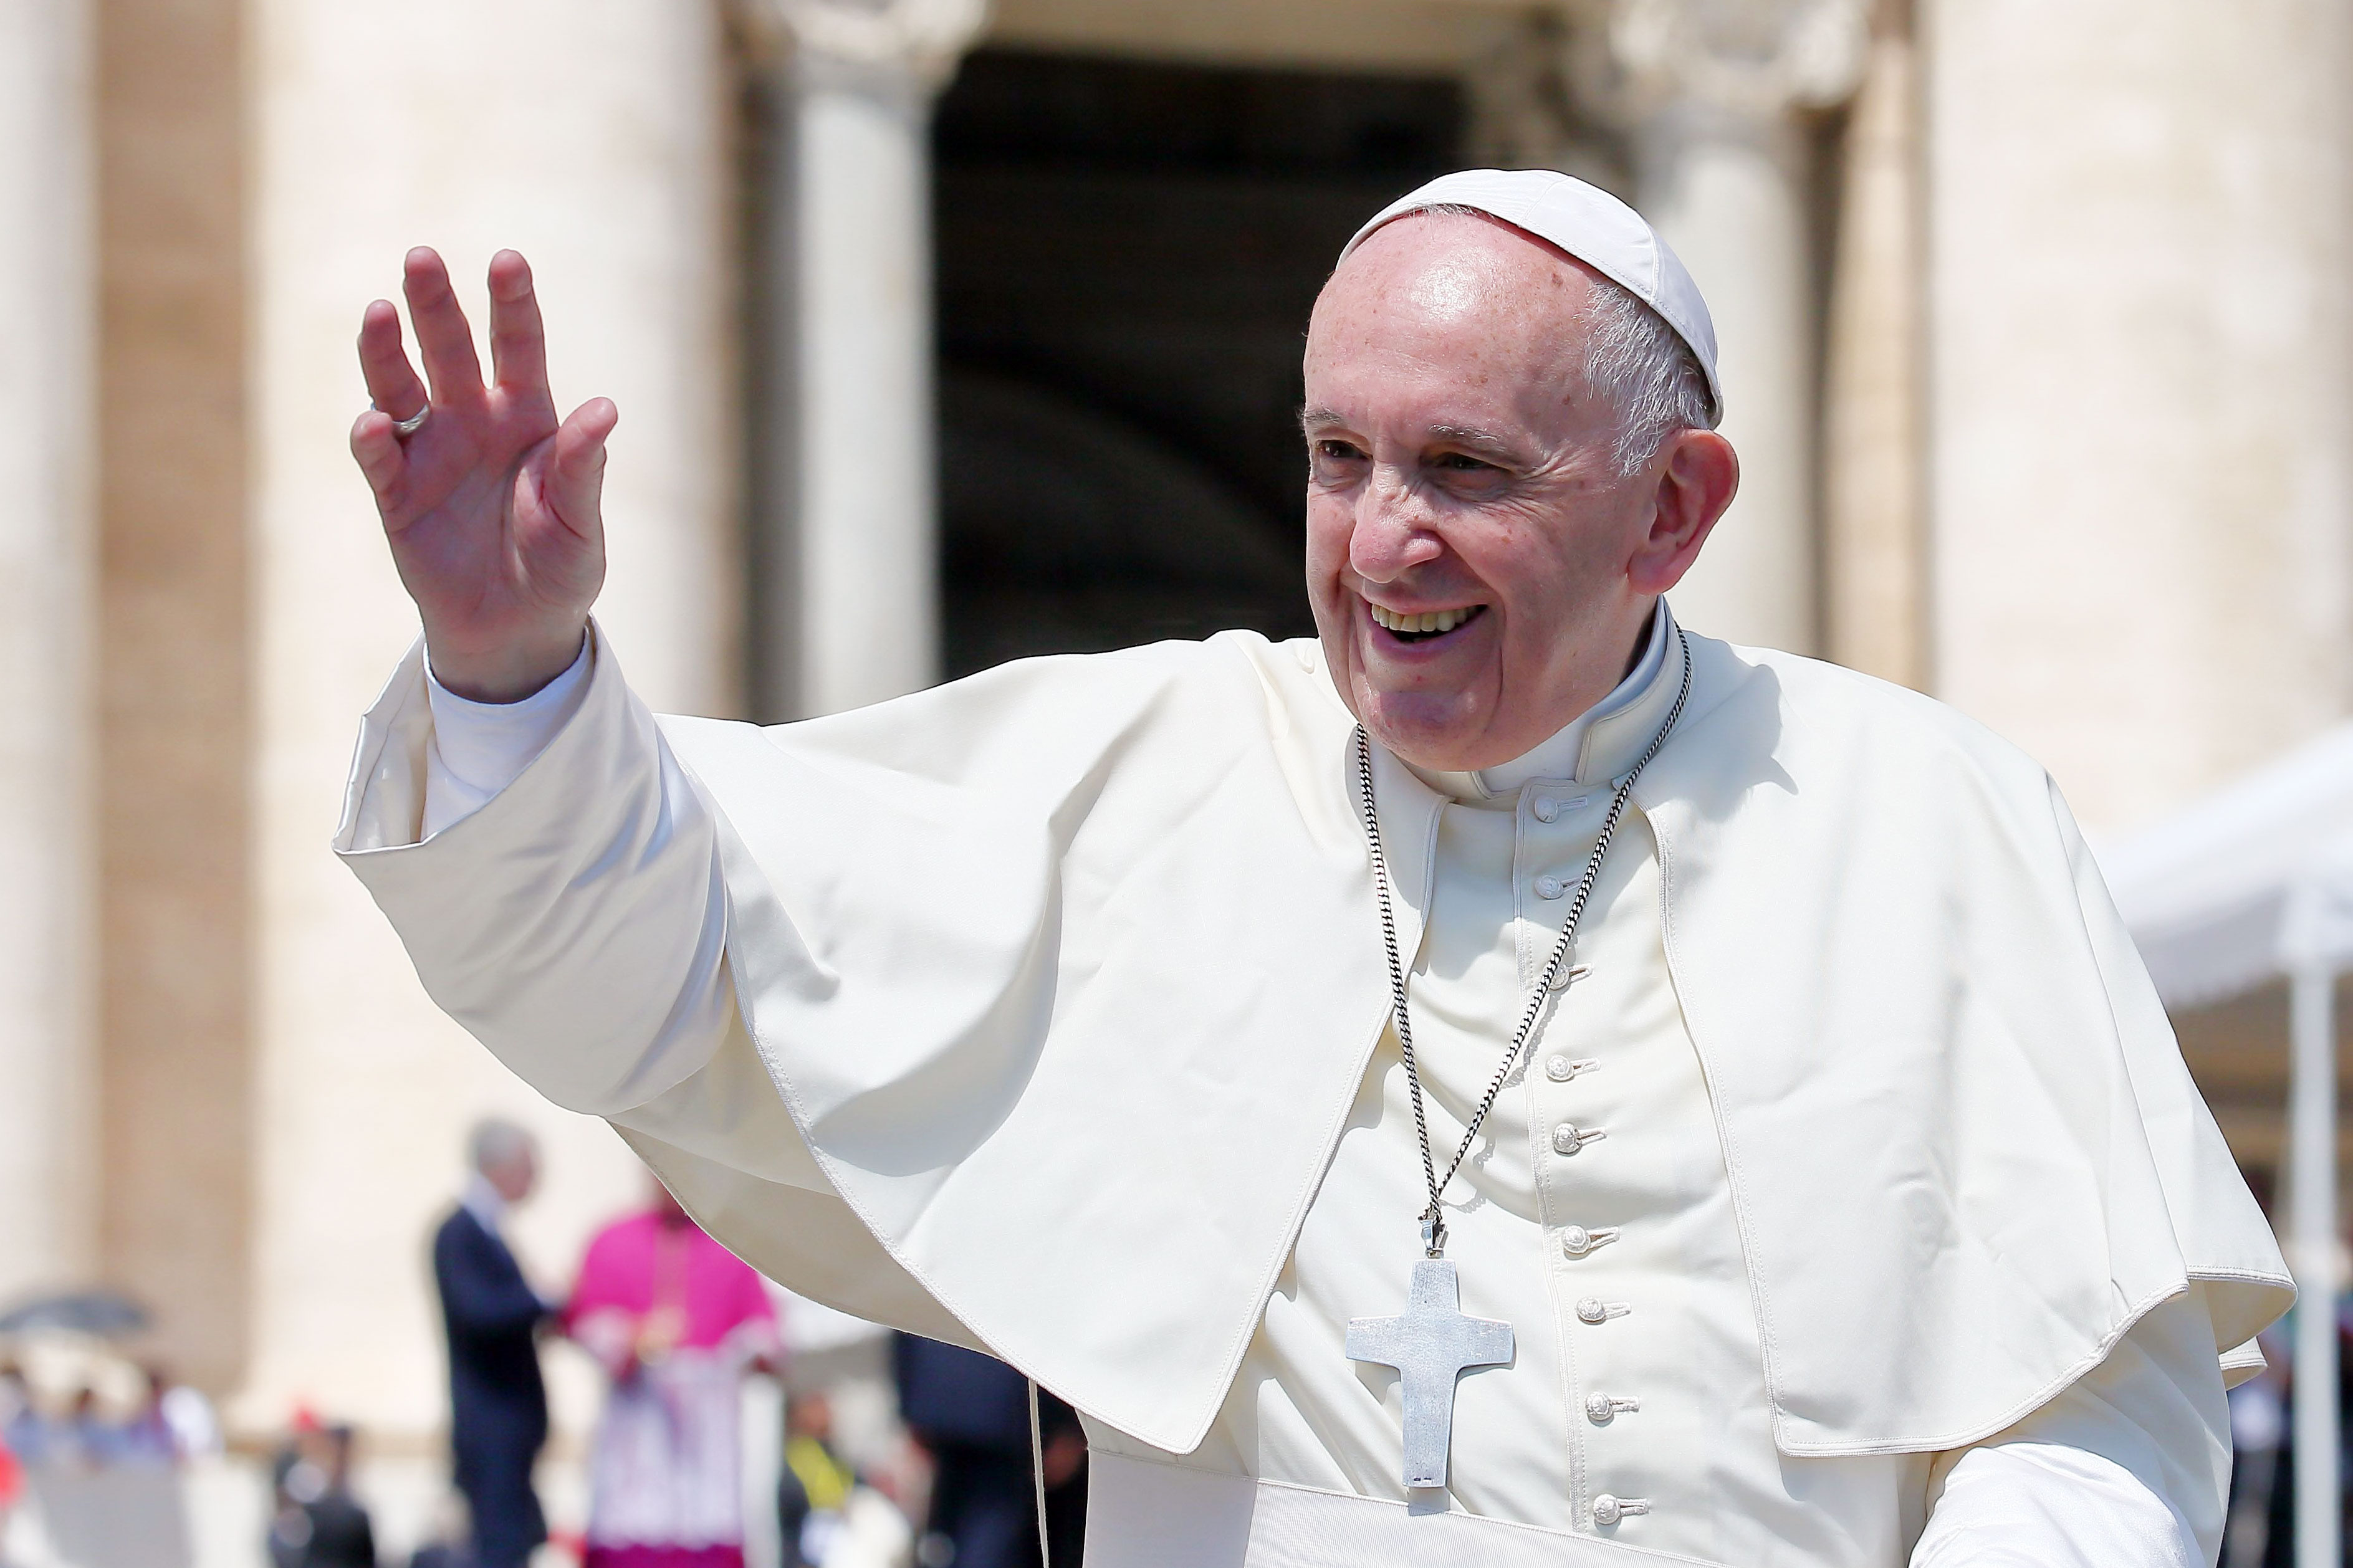 Pope Francis Condemns the Death Penalty While Trump Supports